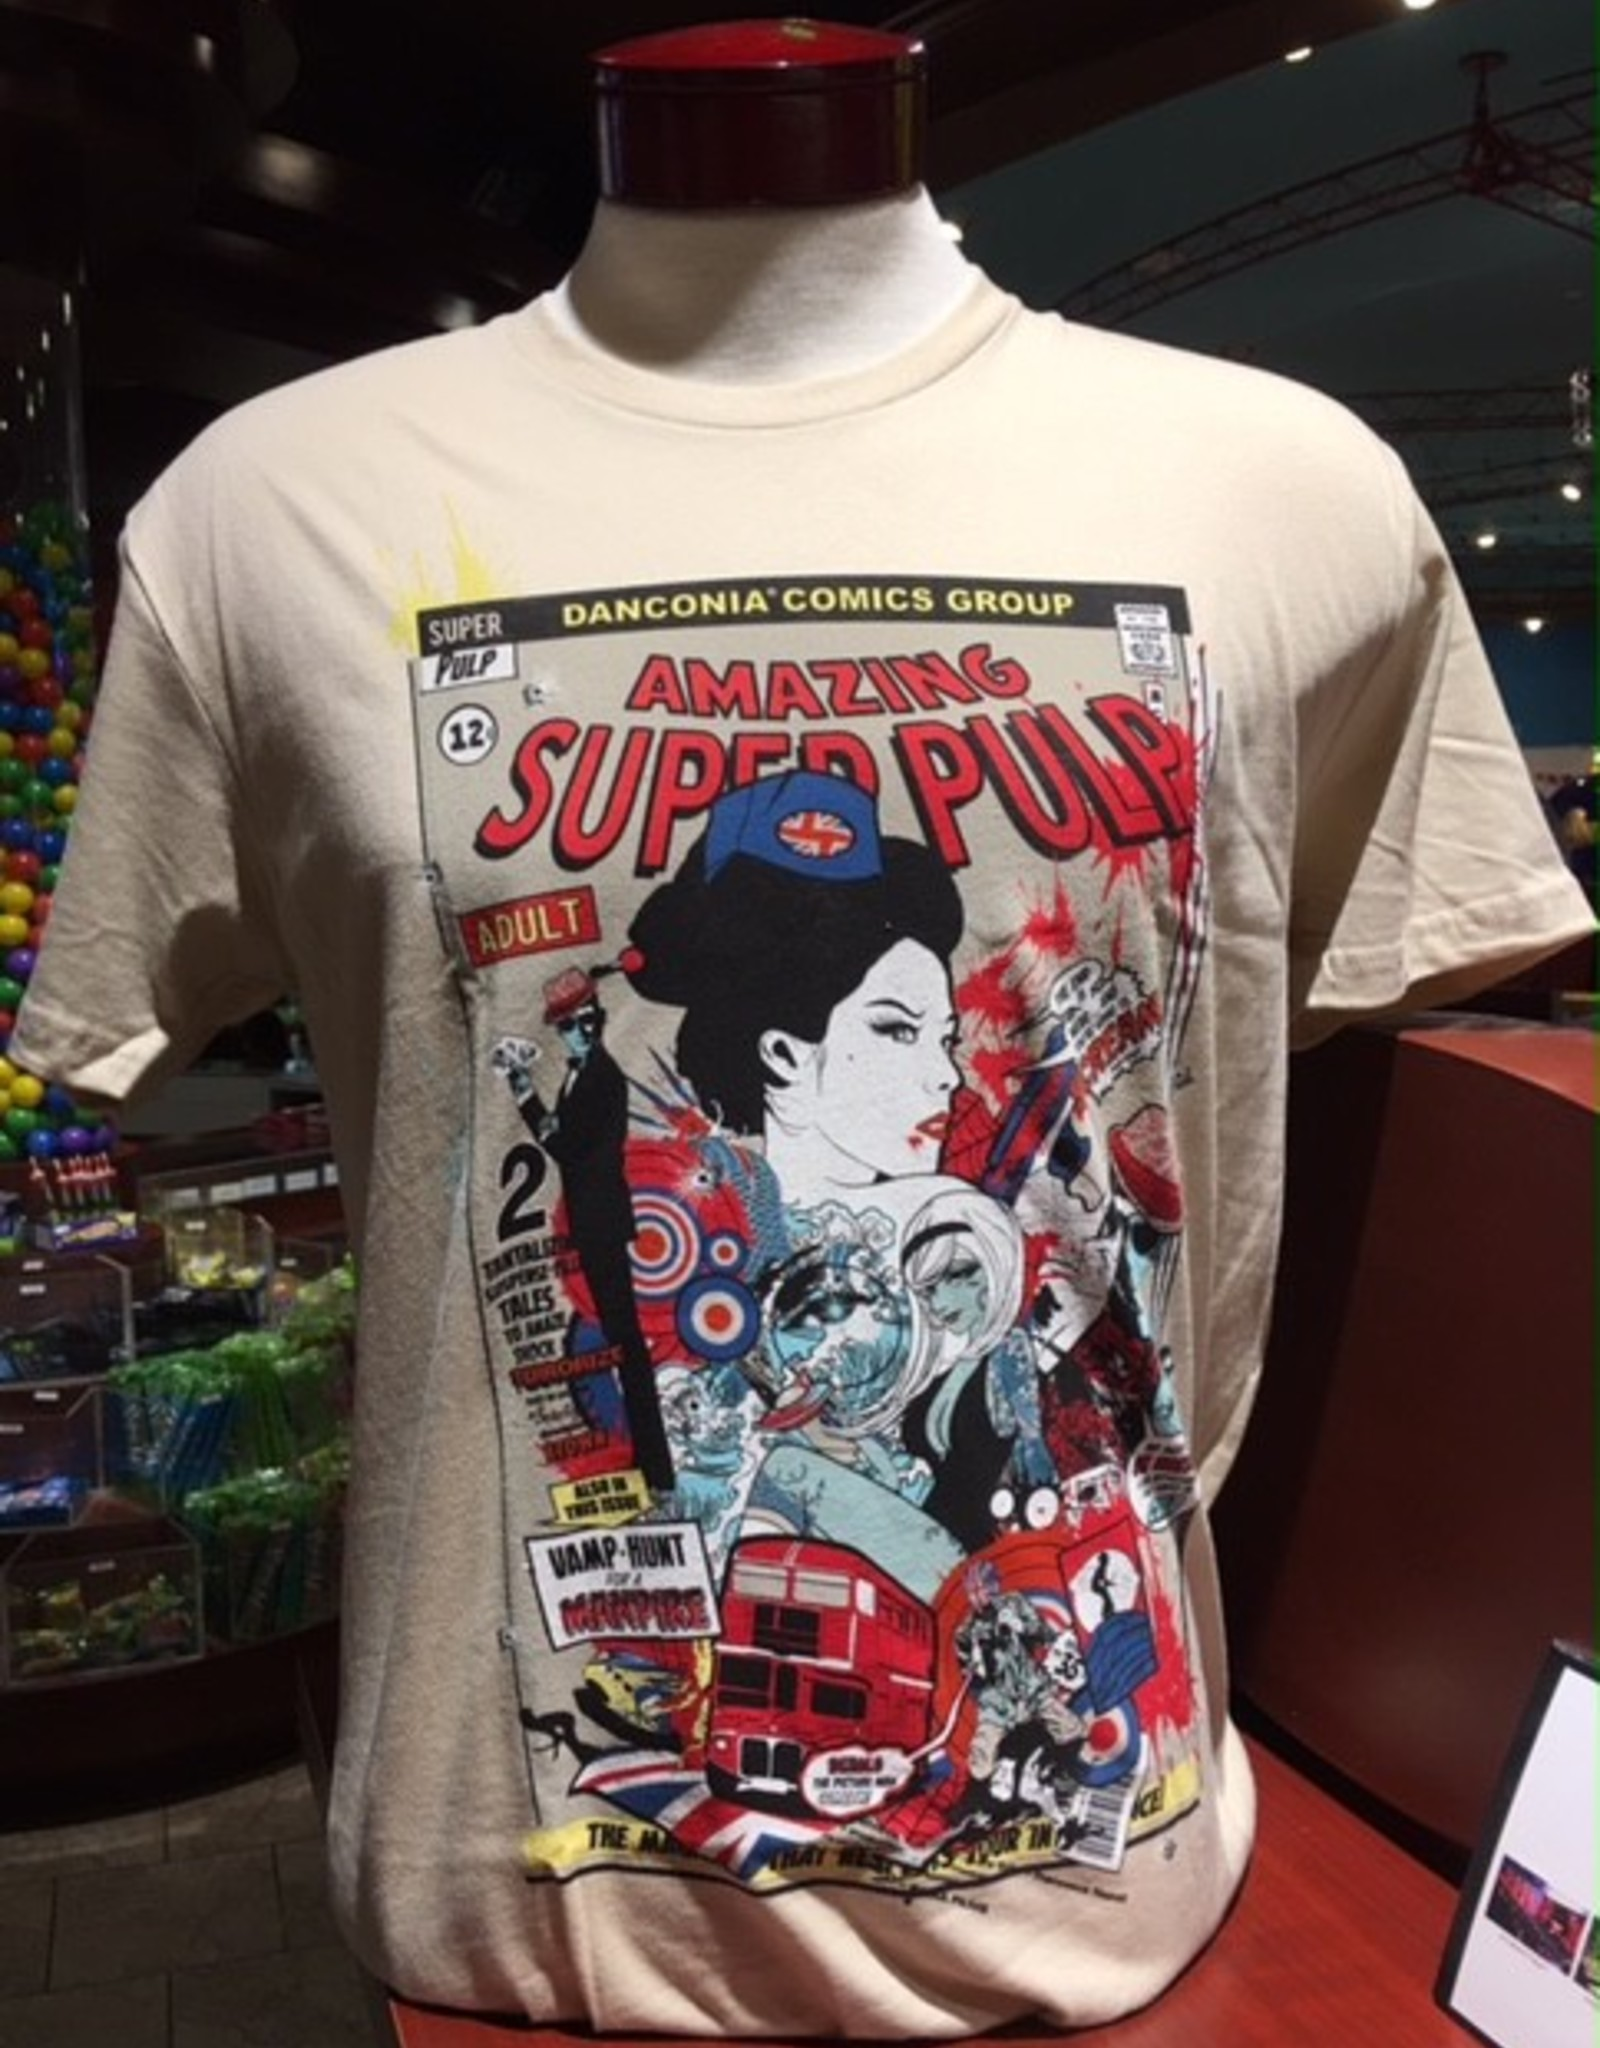 Sean Danconia - Amazing Super Pulp Tee